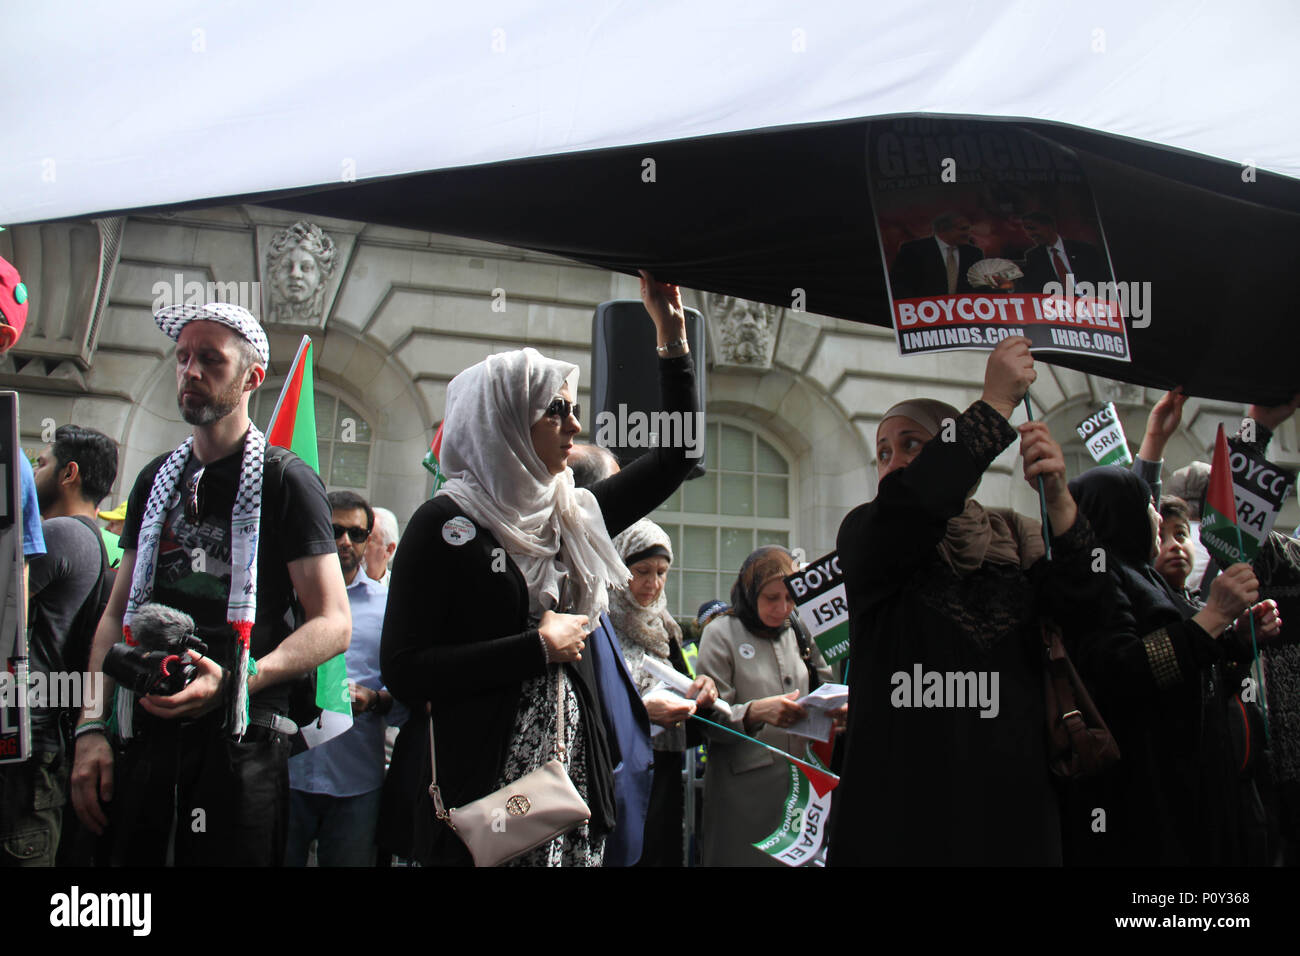 London, UK - 10 June 2018: Protestors seen below a Palesitine flag take part  in a demonstration outside the Saudi Arabia Embassy for Al Quds Day on 10 June 2018. The annual event held on the last Friday of Ramadan that was initiated in 1979 to express support for the Palestinians and oppose Zionism and Israel. Credit: David Mbiyu Credit: david mbiyu/Alamy Live News - Stock Image